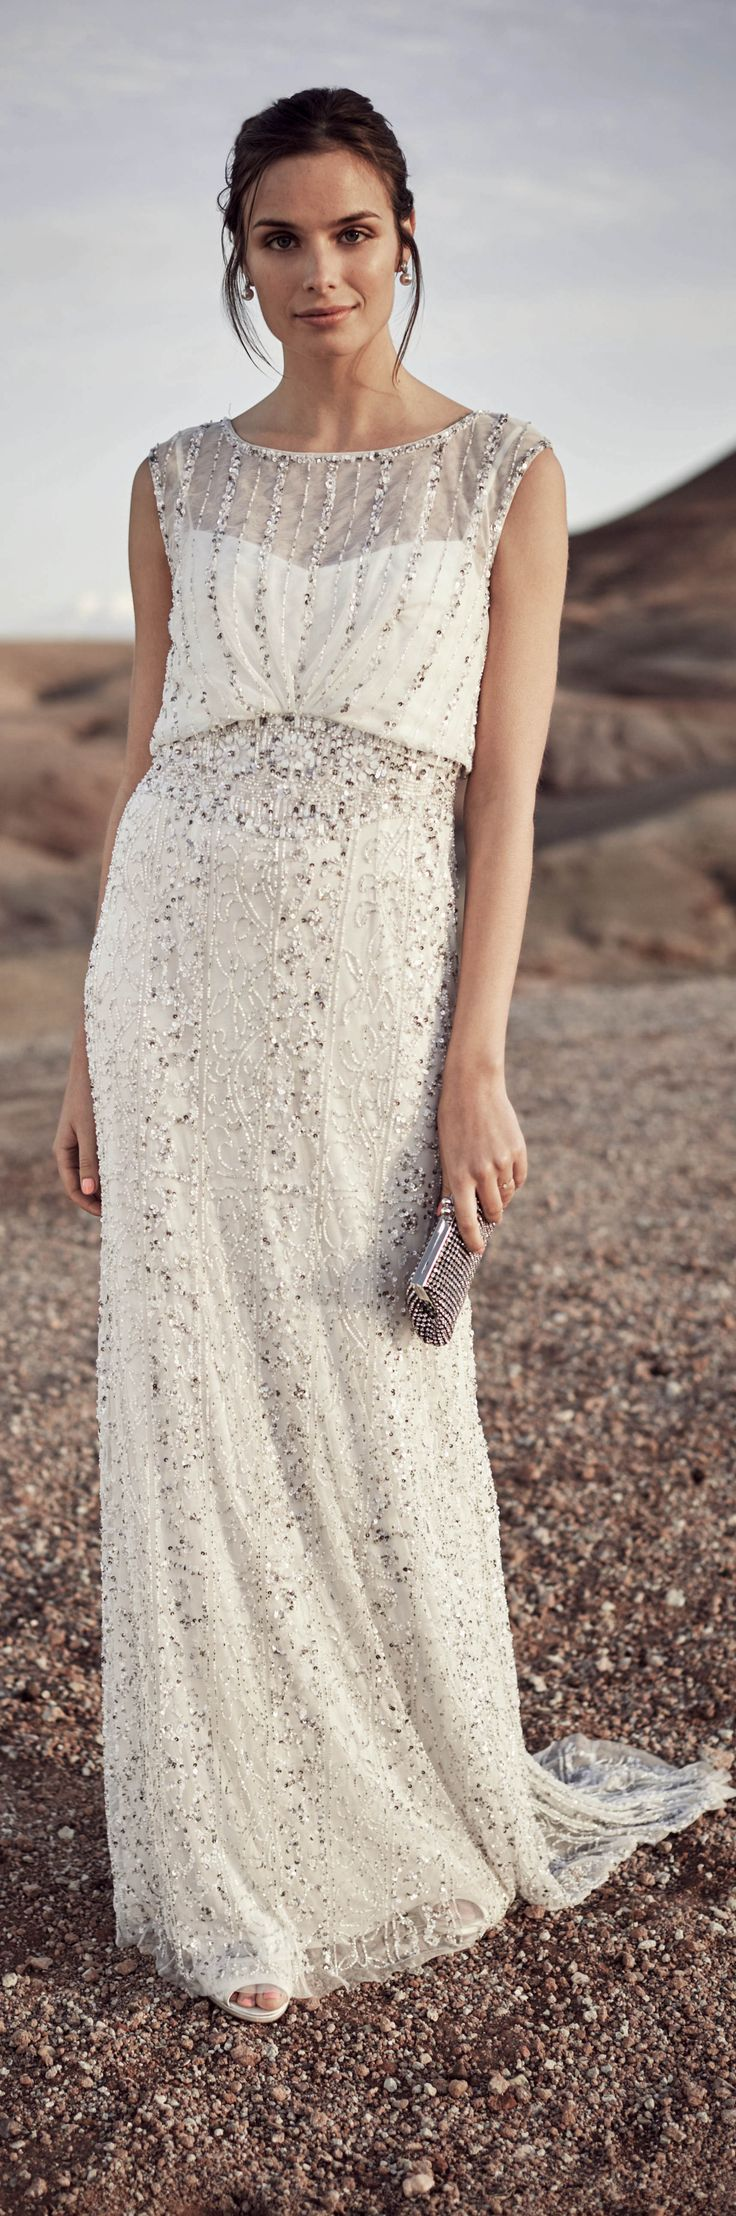 334 best * WEDDING Dresses for Older Brides images on ...